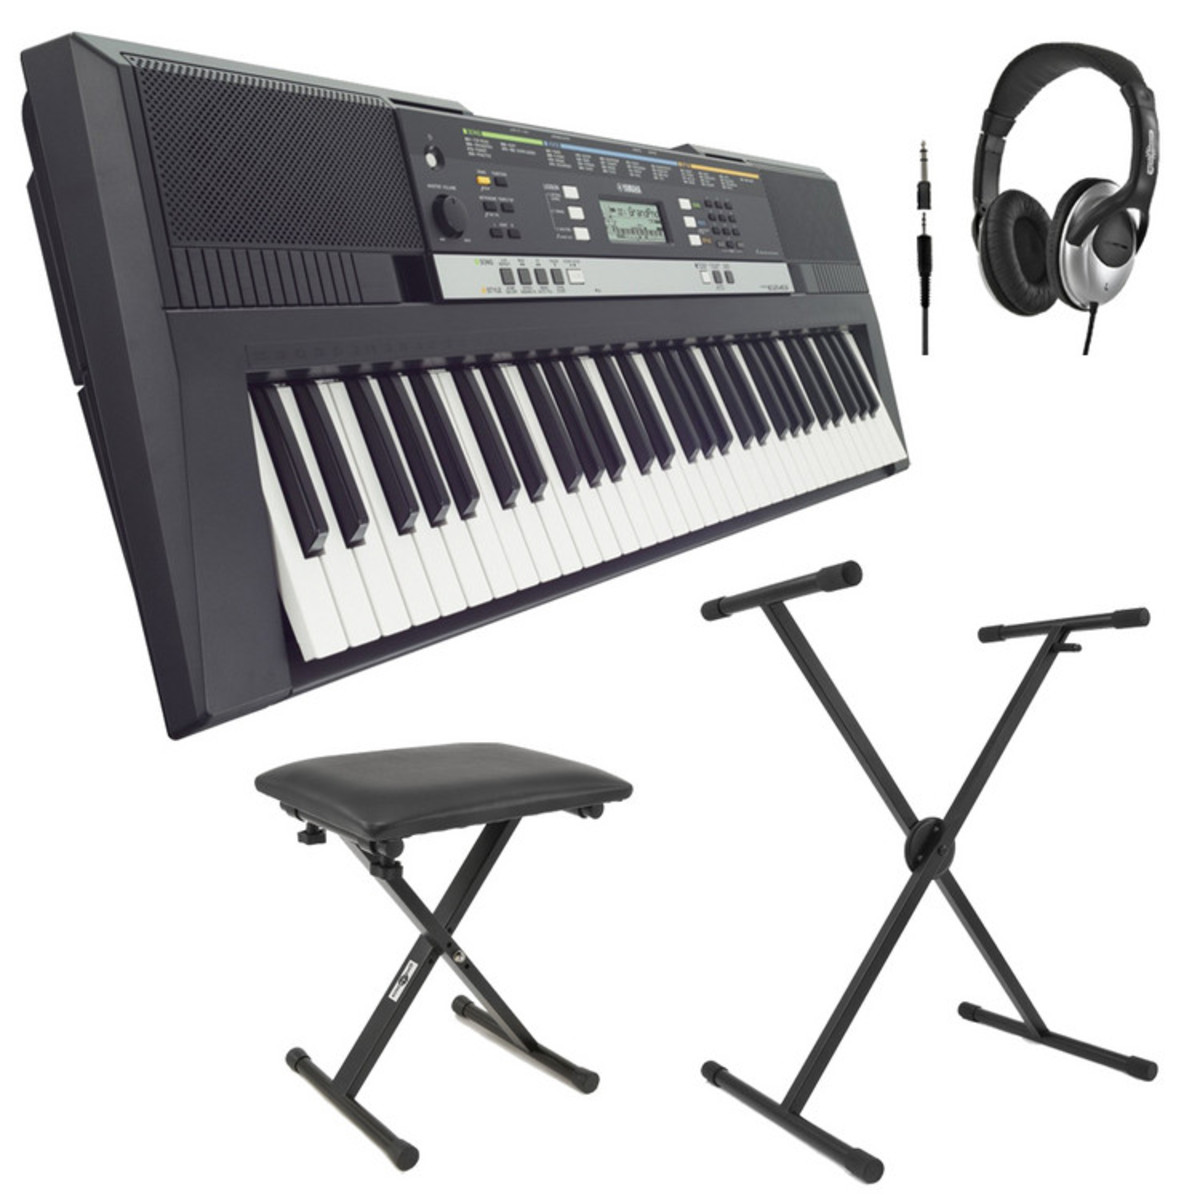 Discyamaha psre243 portable keyboard with stand bench and Keyboard stand and bench